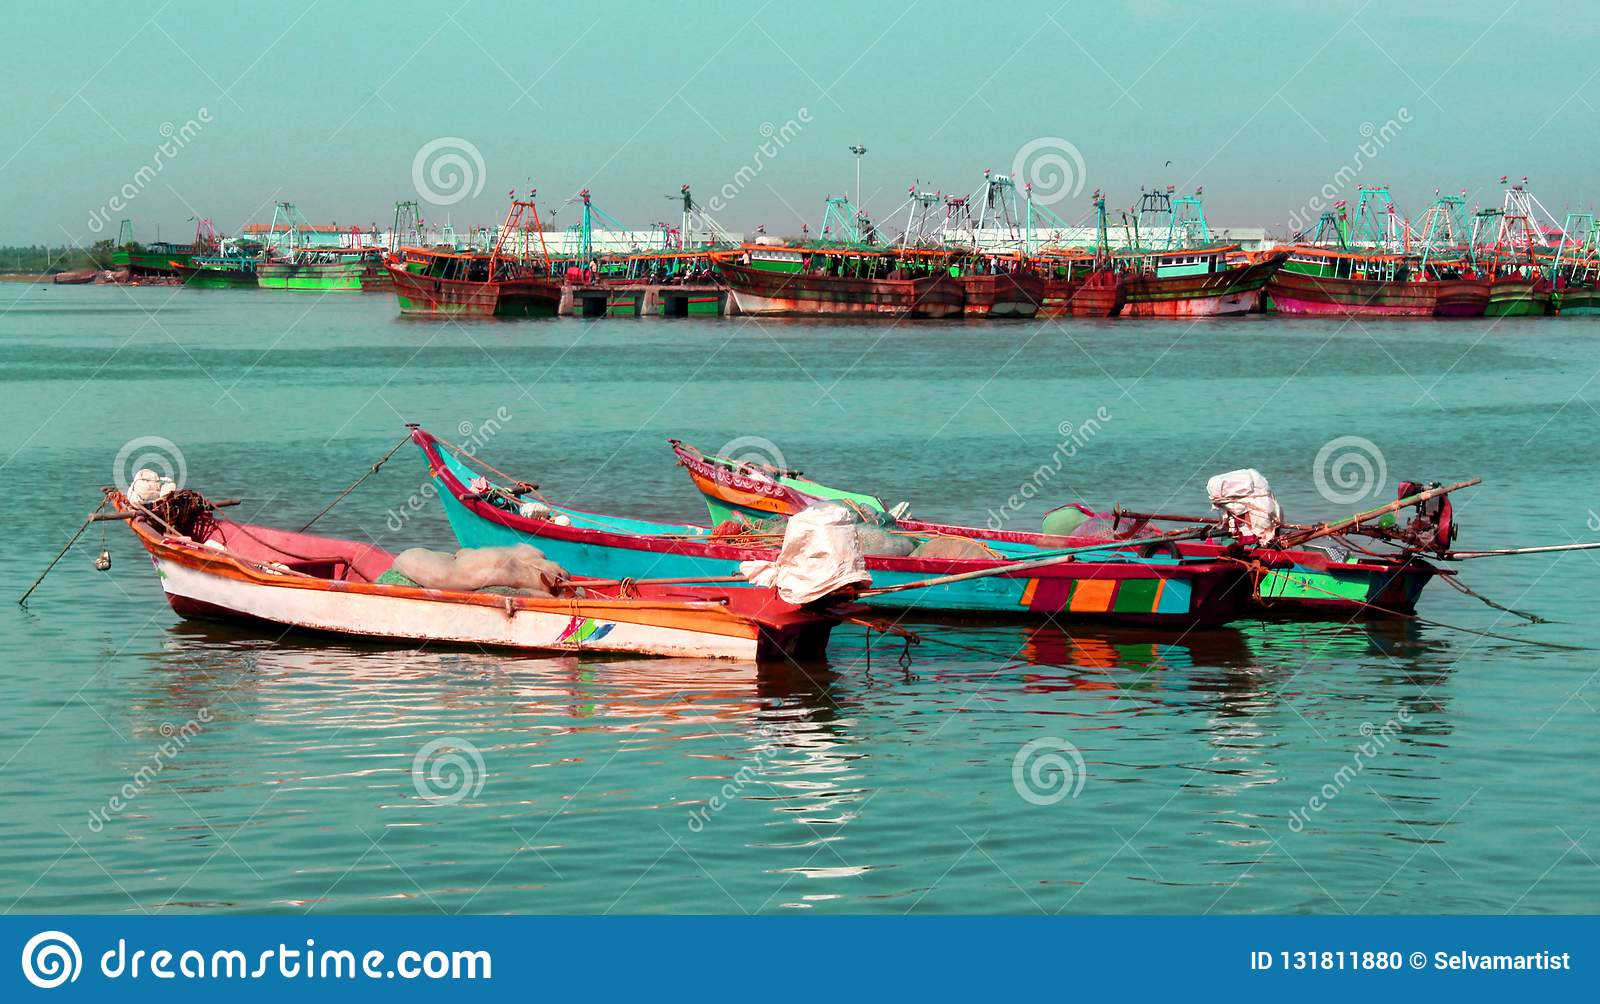 The big and small boats parked in the river arasalaru to ready to catch fish.